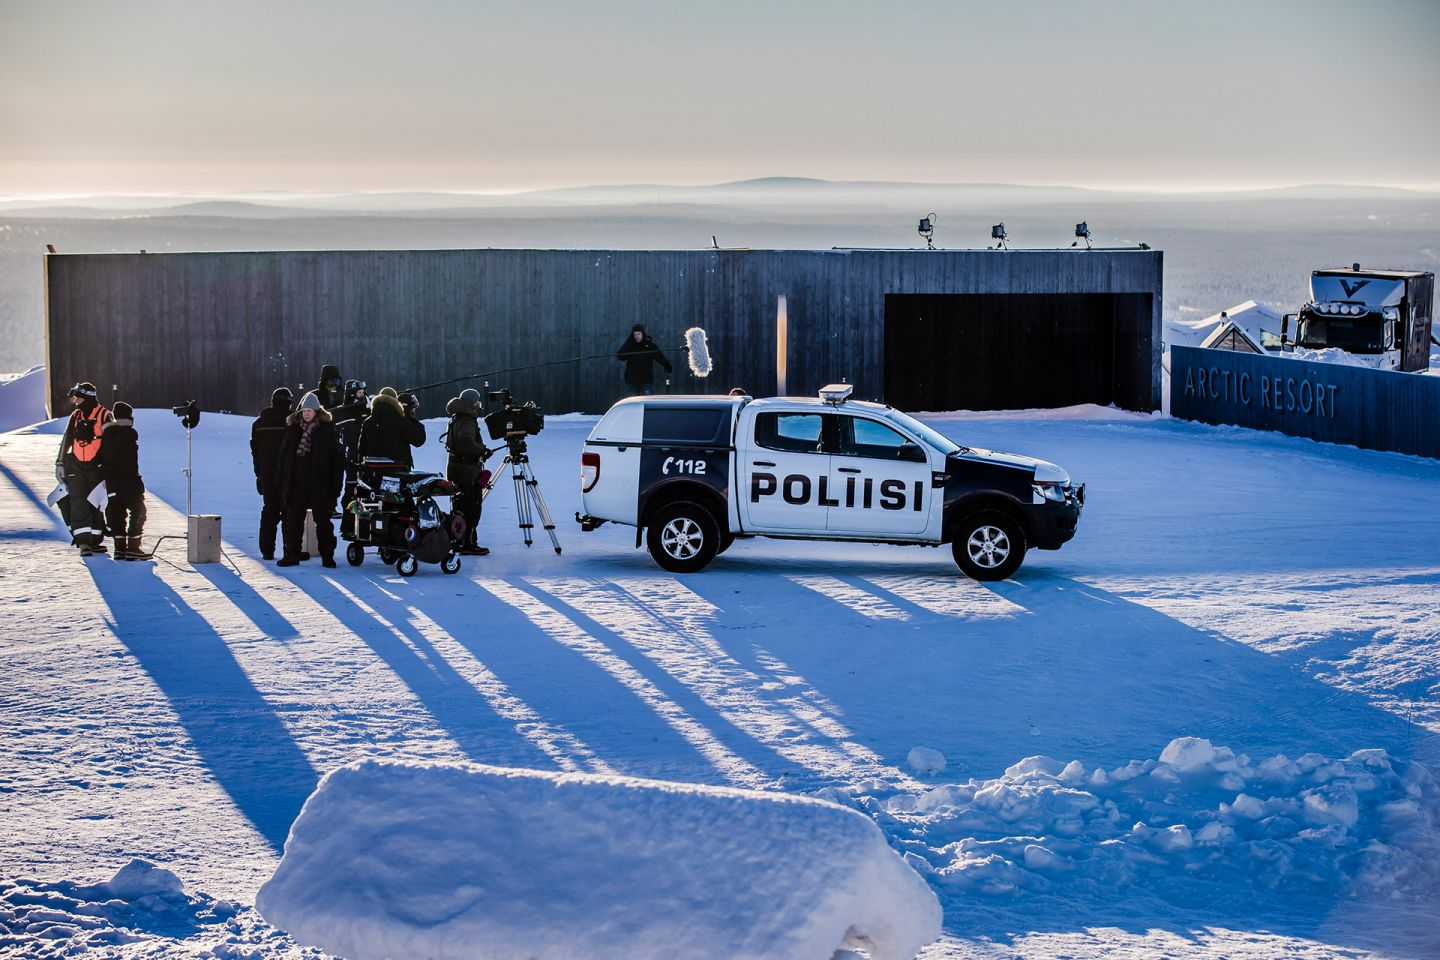 film crew following a police vehicle on the set of Arctic Circle, filmed in Lapland, Finland